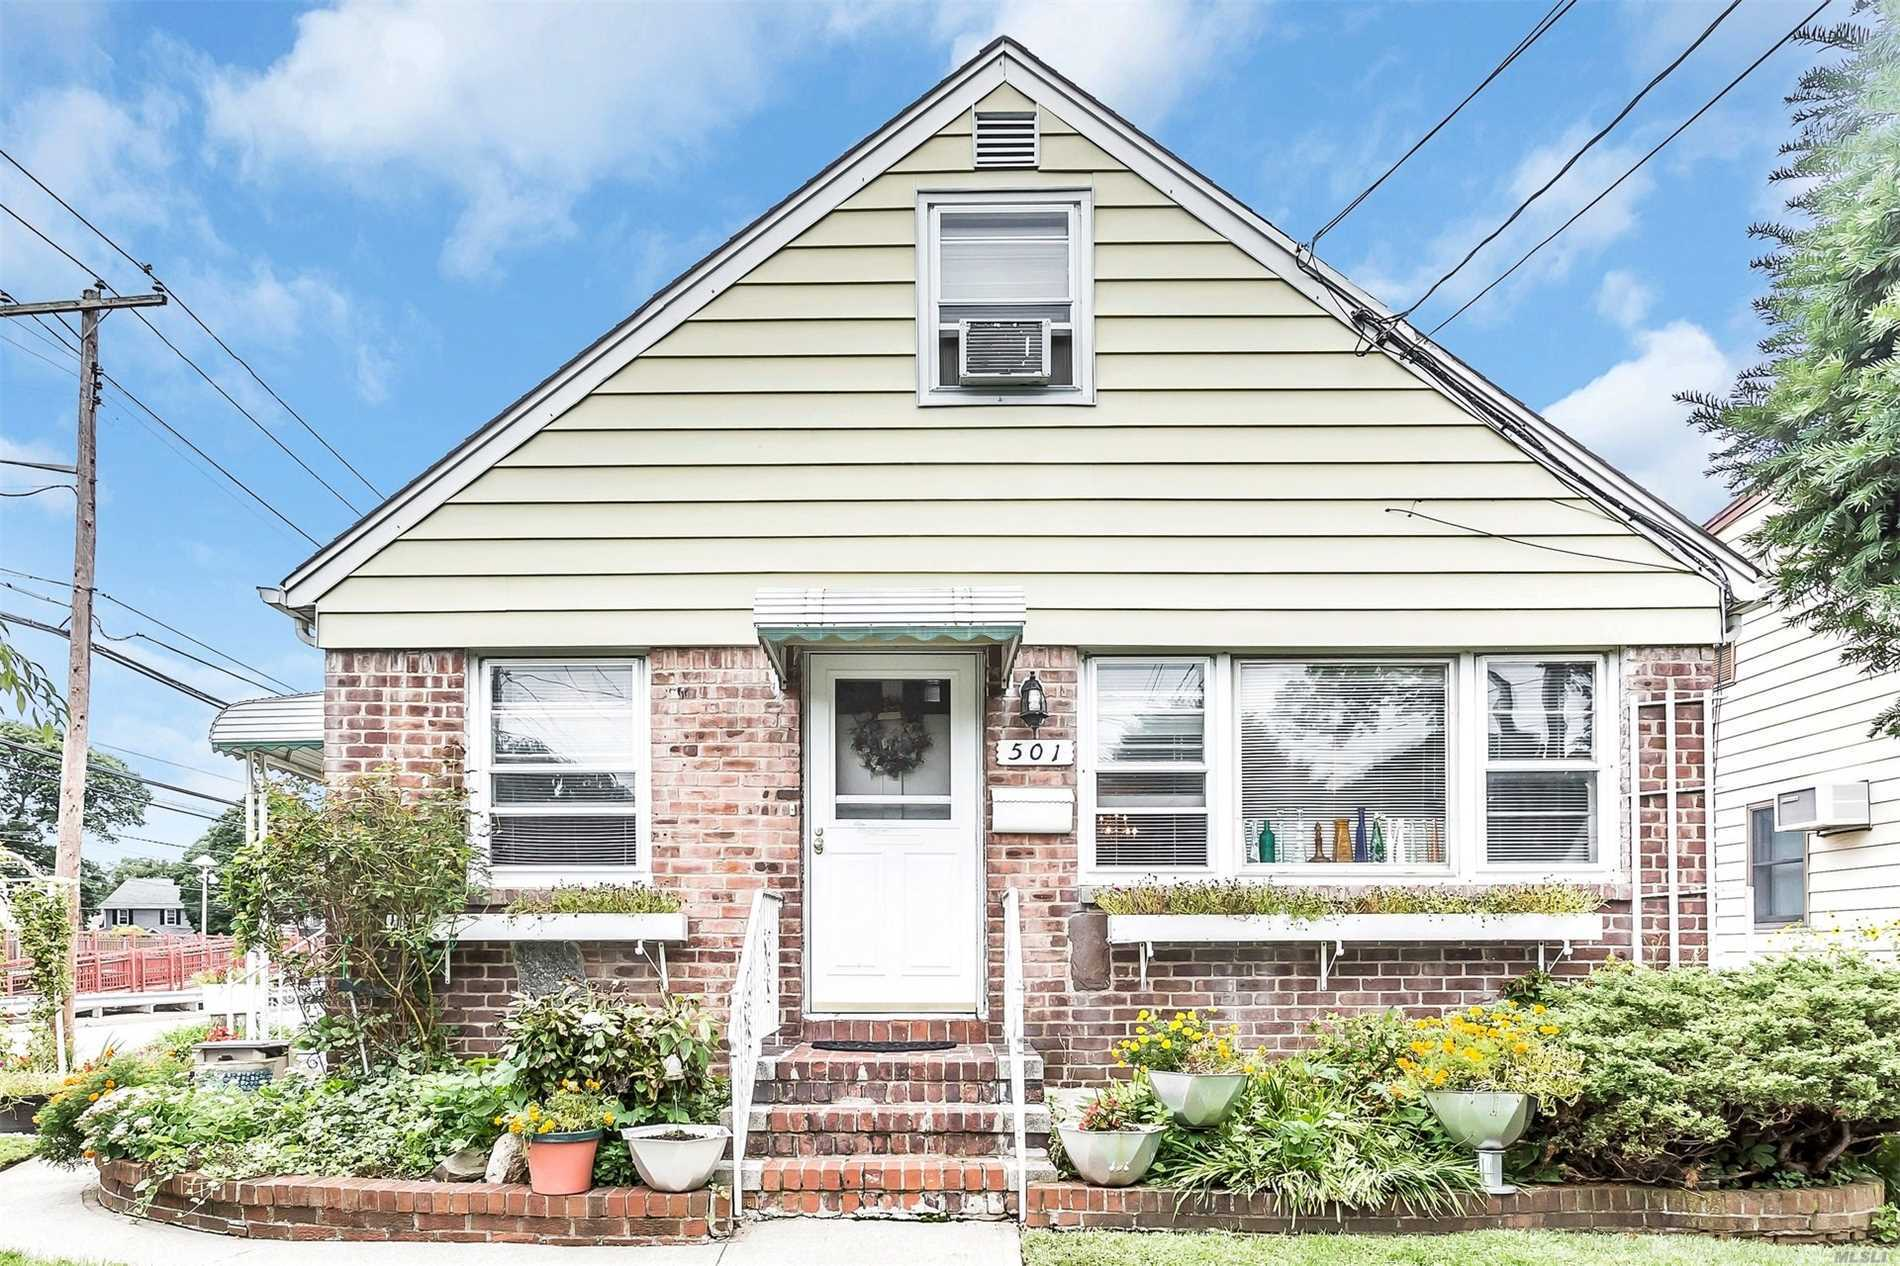 3 Bedroom, 2 Full Bath Inline Cape Set On 54 X 100 Property With 2 Car Garage And Finished Basement With Outside Entrance. Great Location For L.I.R.R Users.